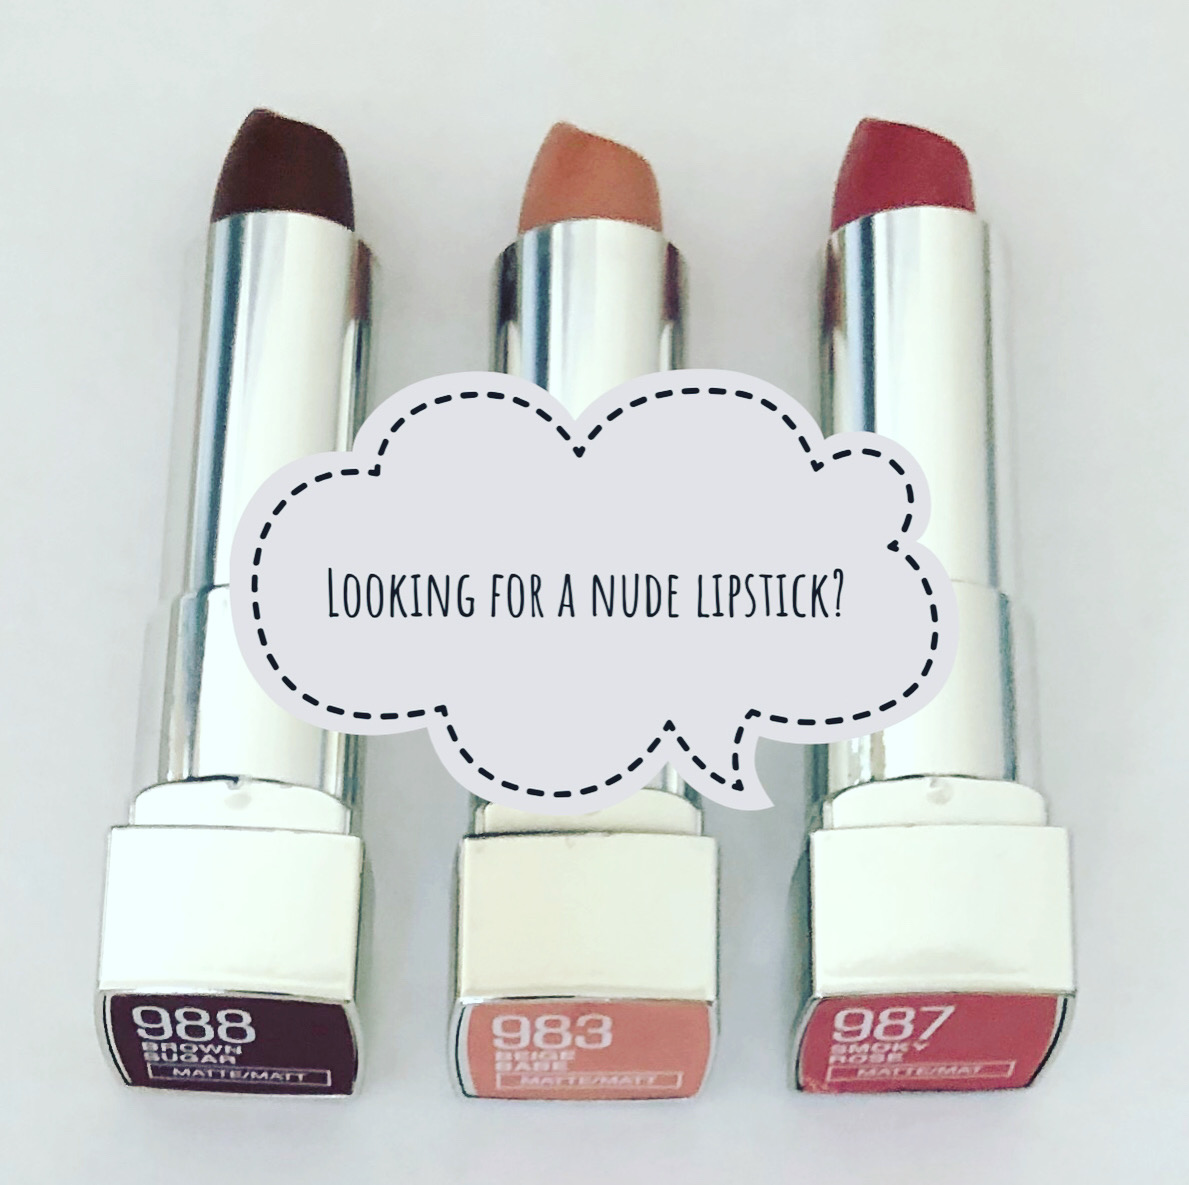 I'm loving Maybelline's Nude Lipsticks.